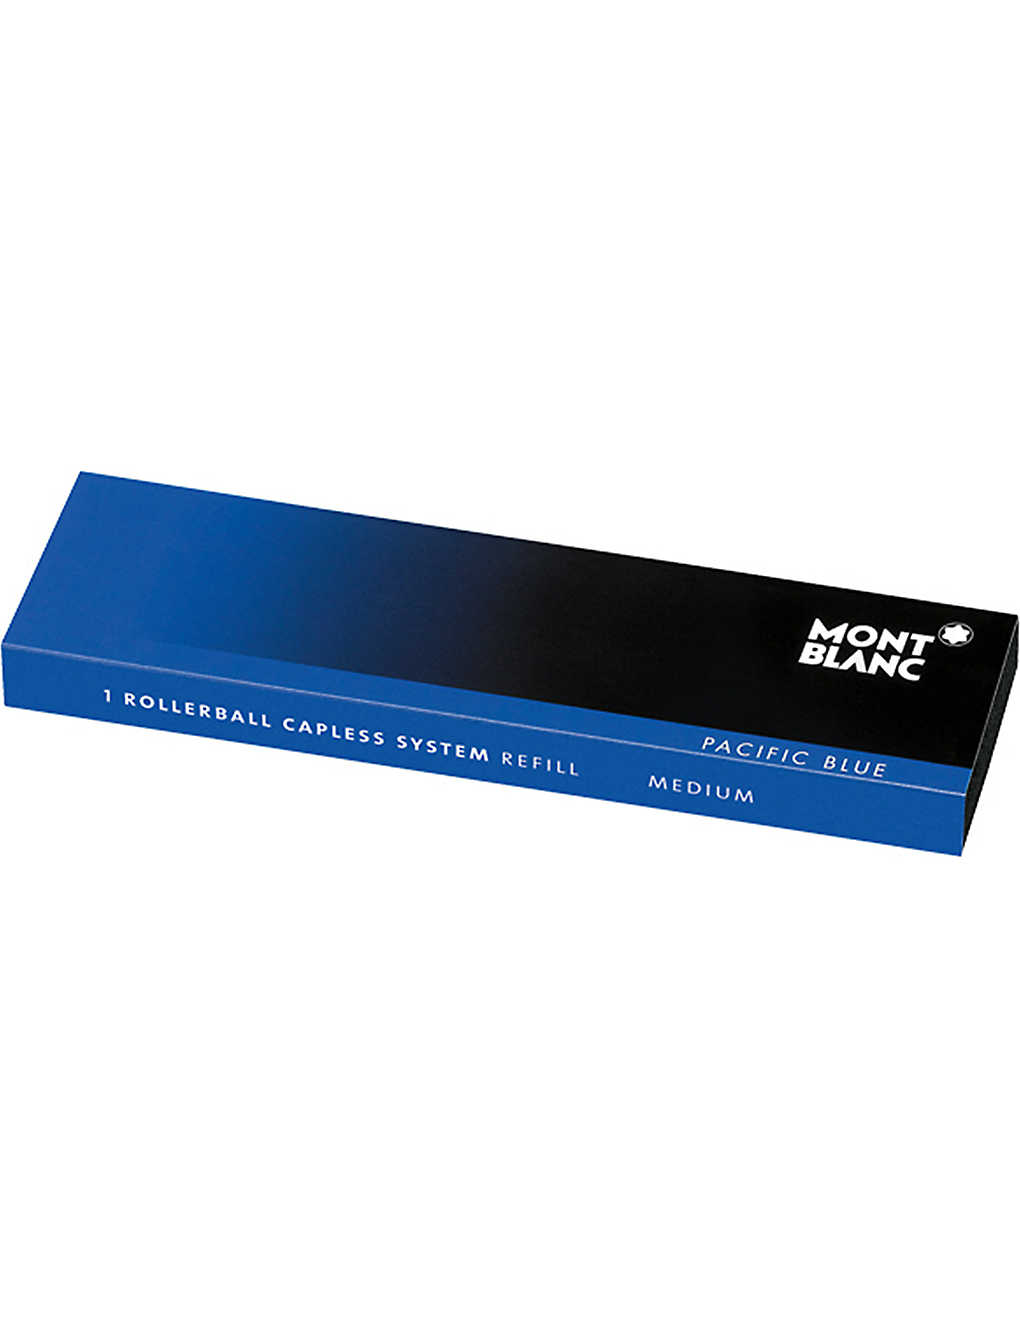 MONTBLANC: Rollerball capless system refill (M) Pacific Blue